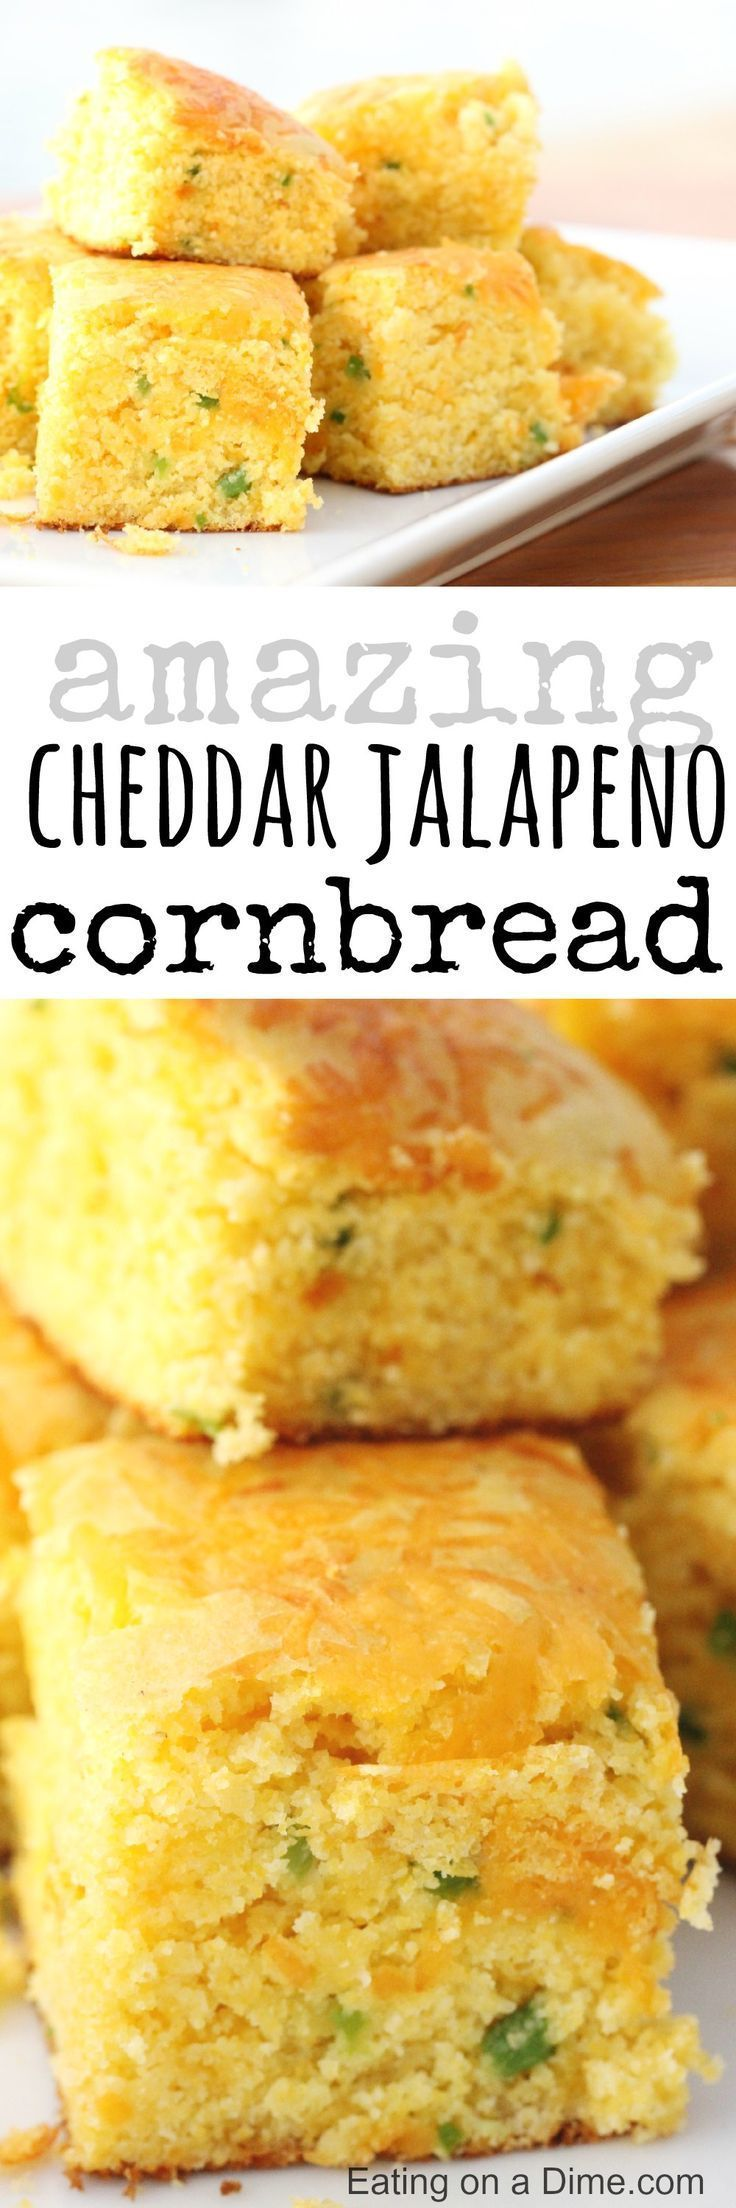 Cheddar Jalapeno Cornbread recipe.  Today I'm sharing with you a delicious cheddar jalapeño cornbread recipe that I know your family will love.   There are even some great chili recipes to make a complete meal! #Recipes